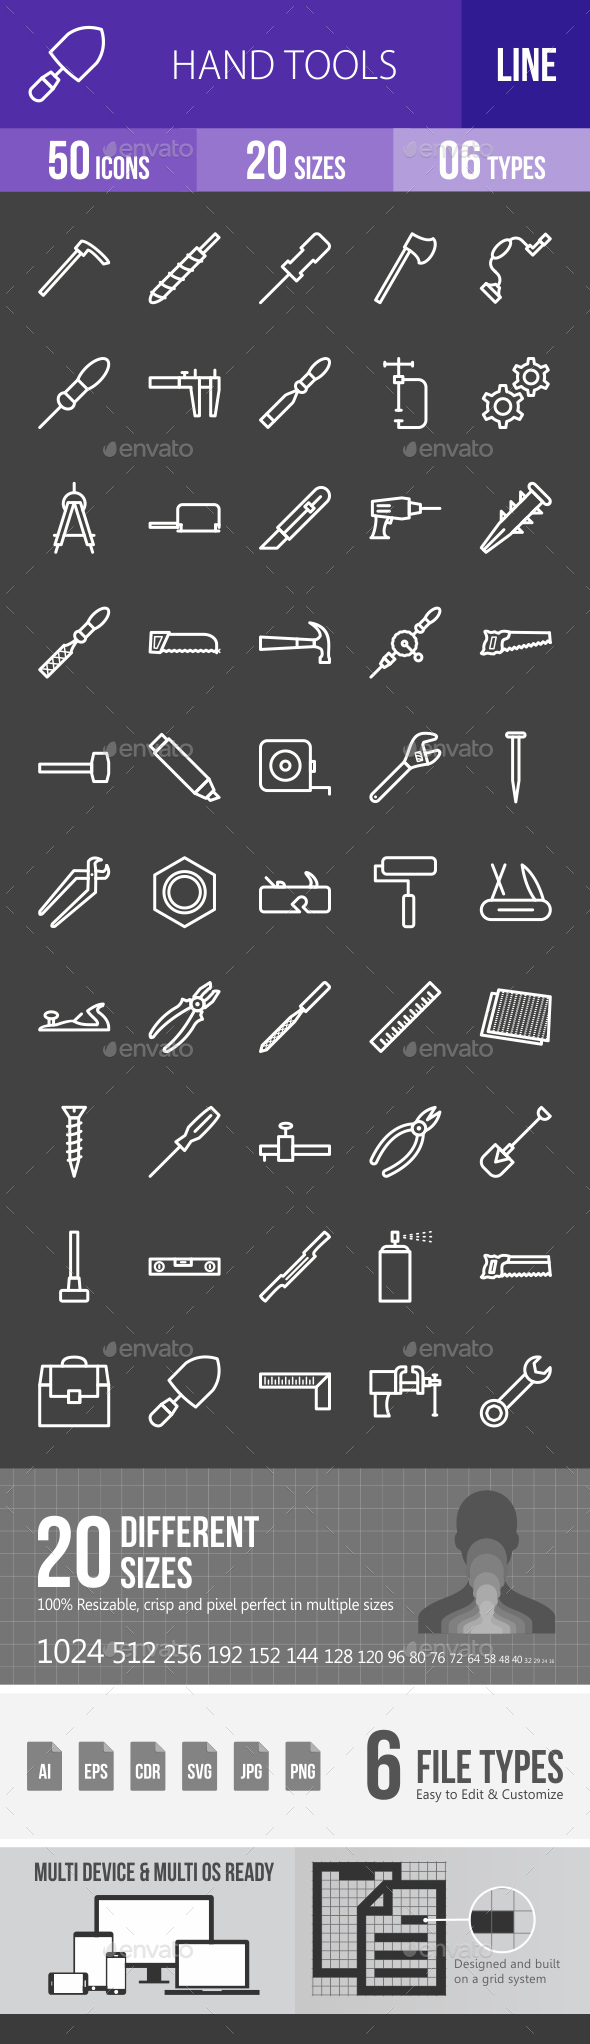 Hand Tools Line Inverted Icons - Icons